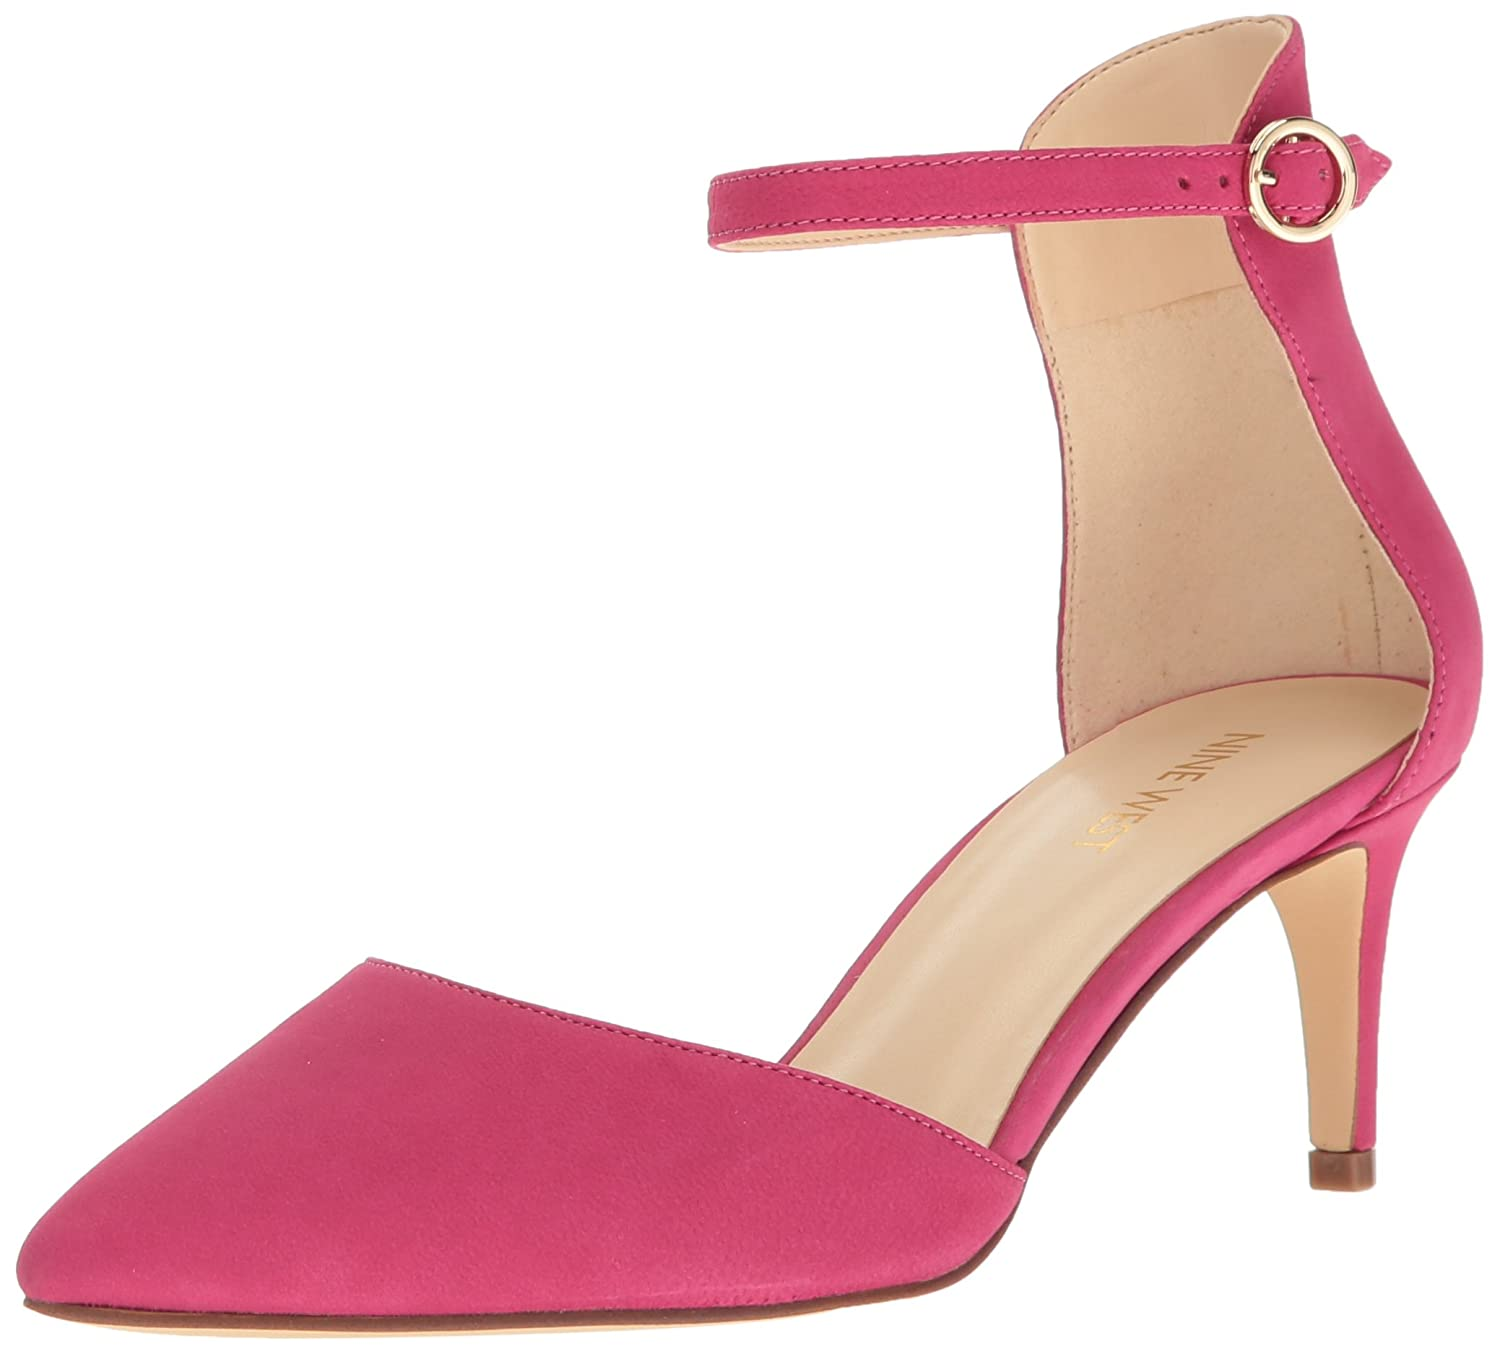 Nine West B01MXEFA50 Women's Sharmila Leather Dress Pump B01MXEFA50 West 5.5 B(M) US|Pink df9c9d